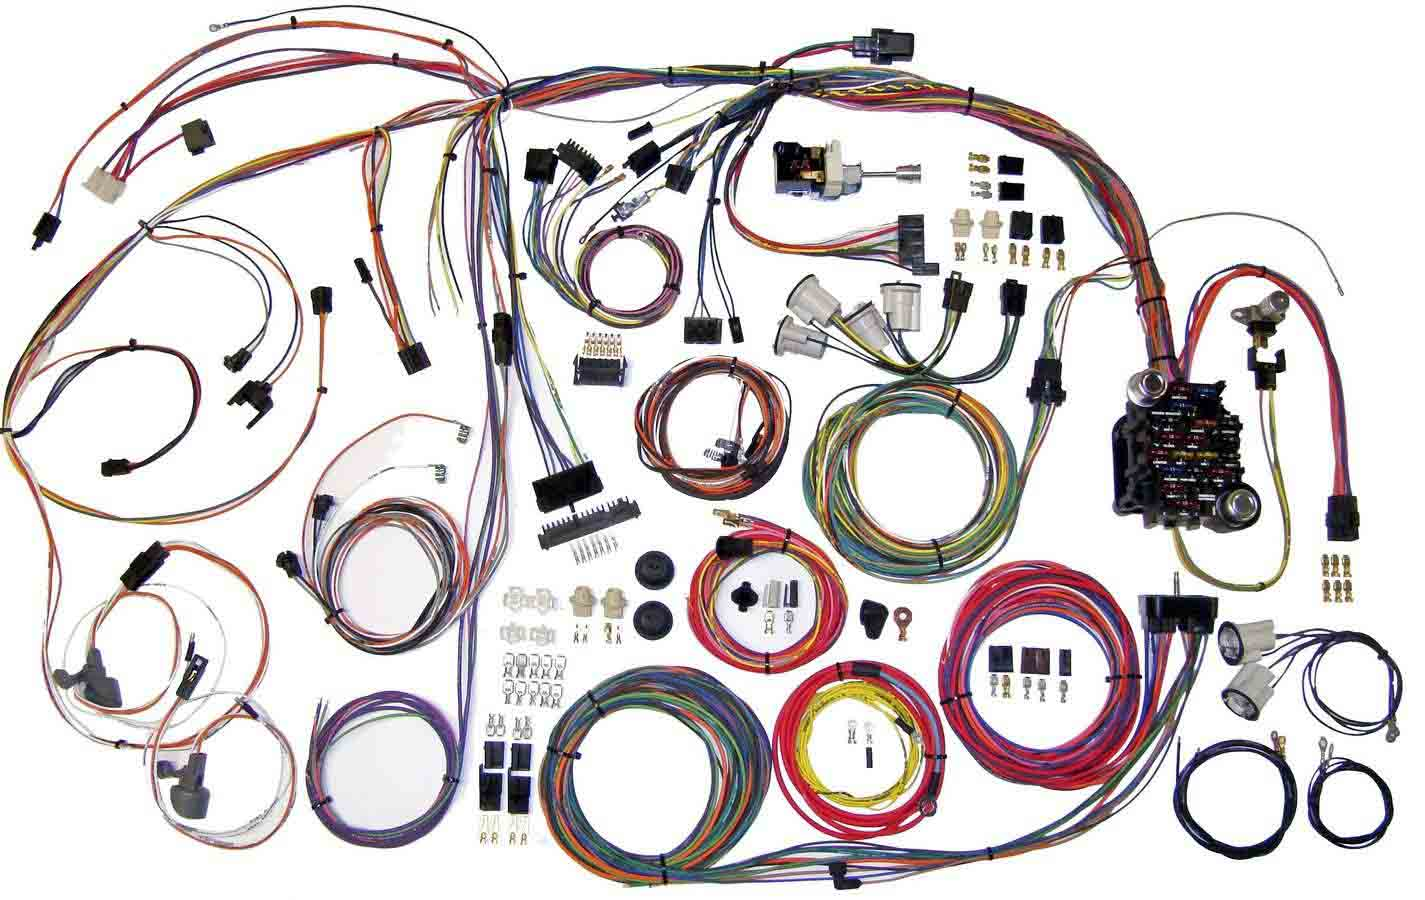 1971 Chevelle Wiring Harness Library Chevy Truck